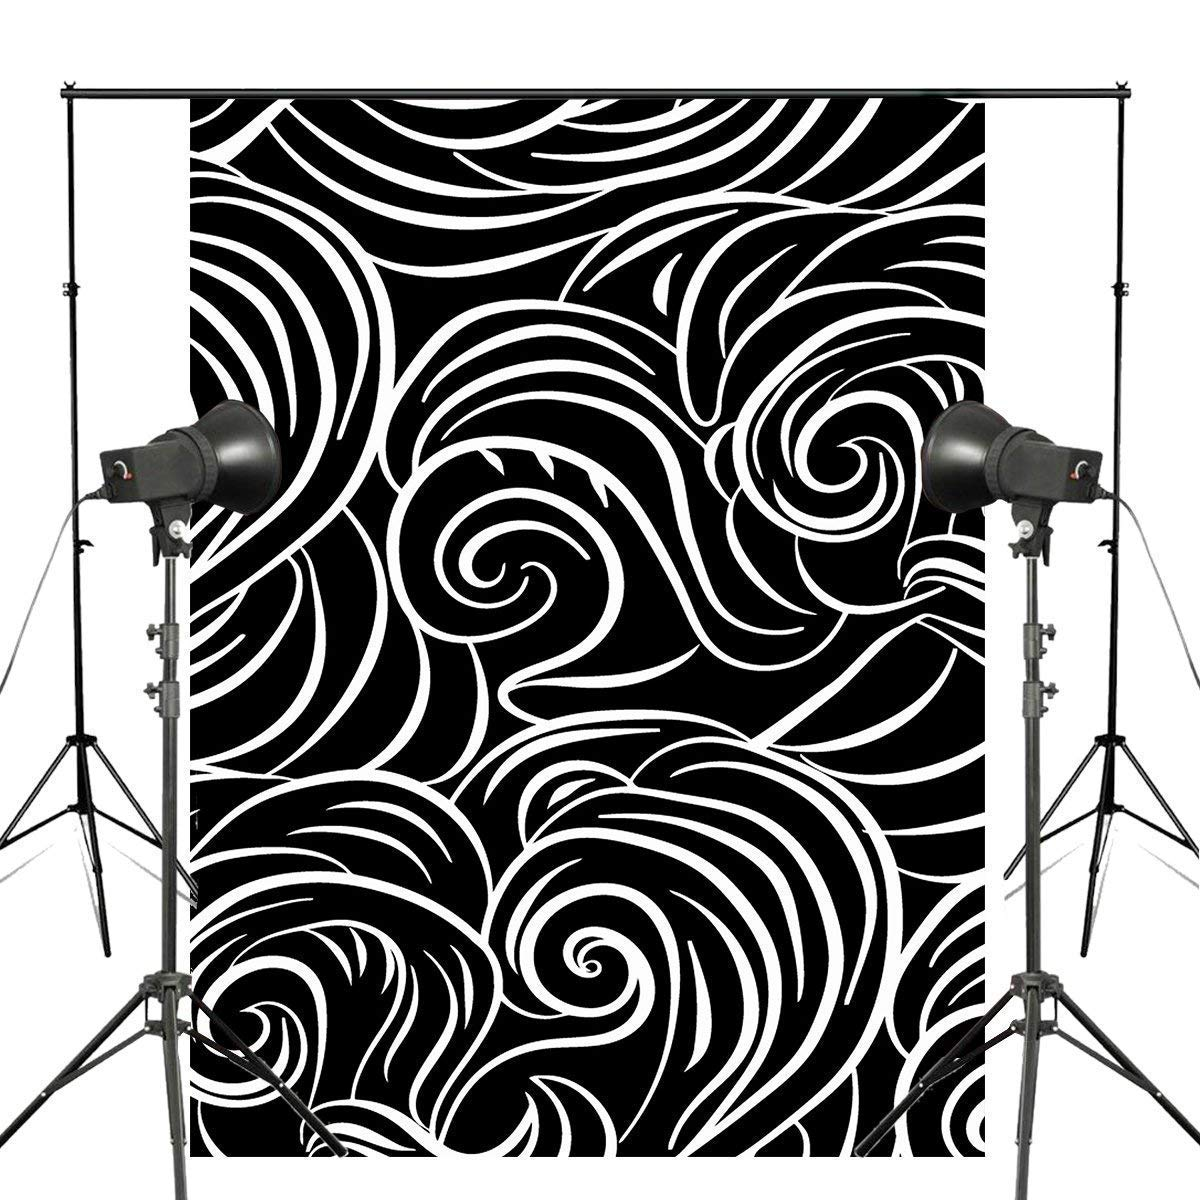 ERTIANANG Abstract Waves Photography Backdrop Black White Clouds Background Art Photo Studio Wall Backdrop 5x7ft